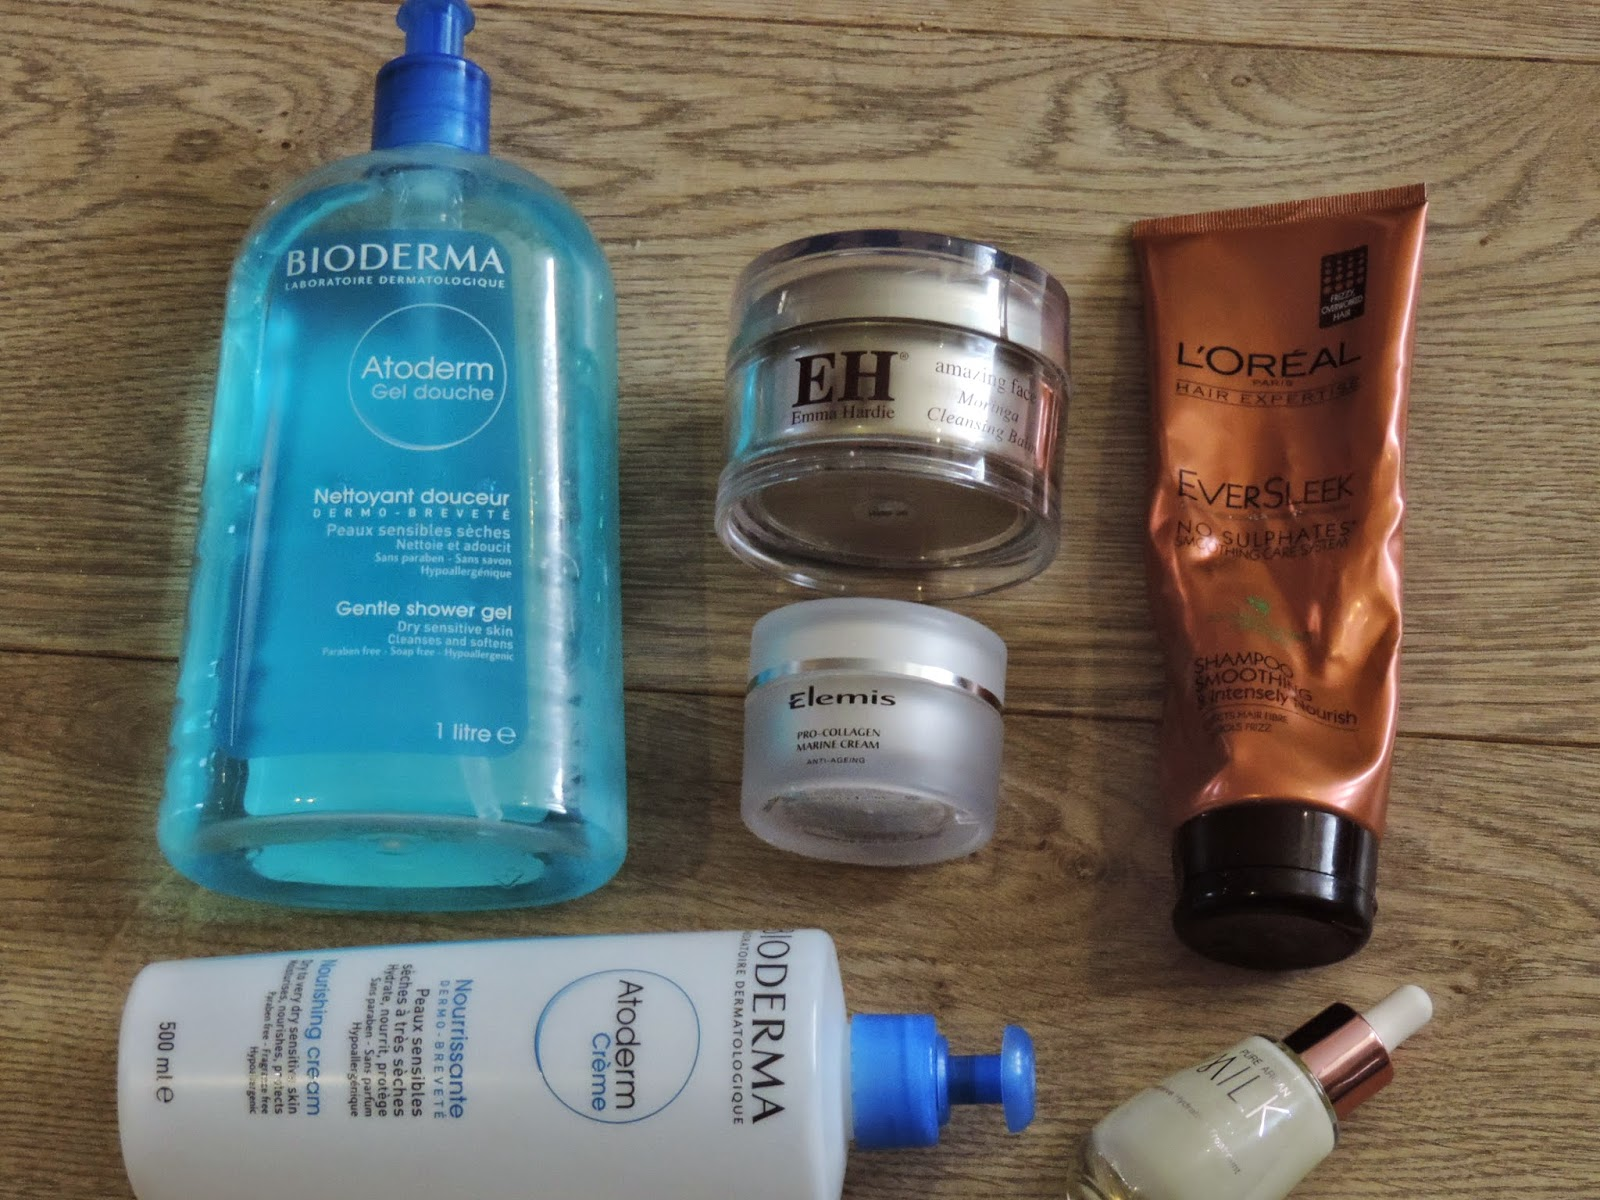 (Clockwise): Bioderma Atoderm Gentle Shower Gel, Emma Hardie Cleansing Balm, L'Oreal Ever Sleek Shampoo, Josie Maran Milk Treatment, Bioderma Atoderm Moisturiser, Elemis Pro Collagen Marine Cream.